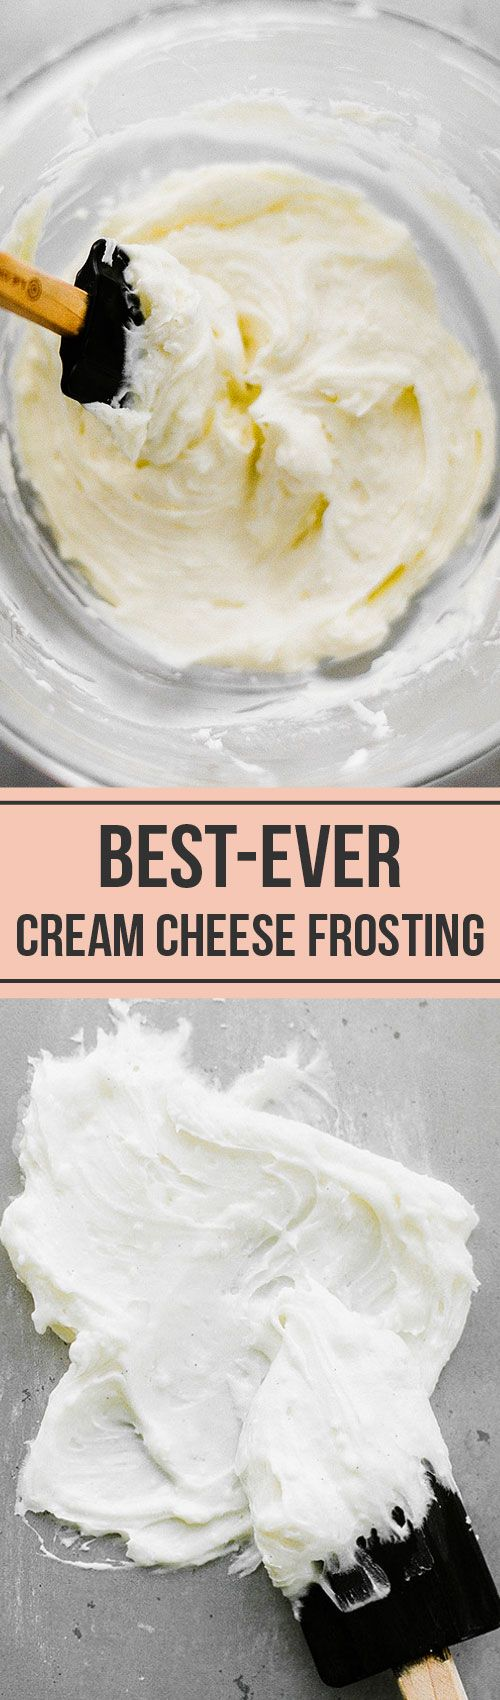 Slow Cooker: The BEST Cream Cheese Frosting - Handle the Heat